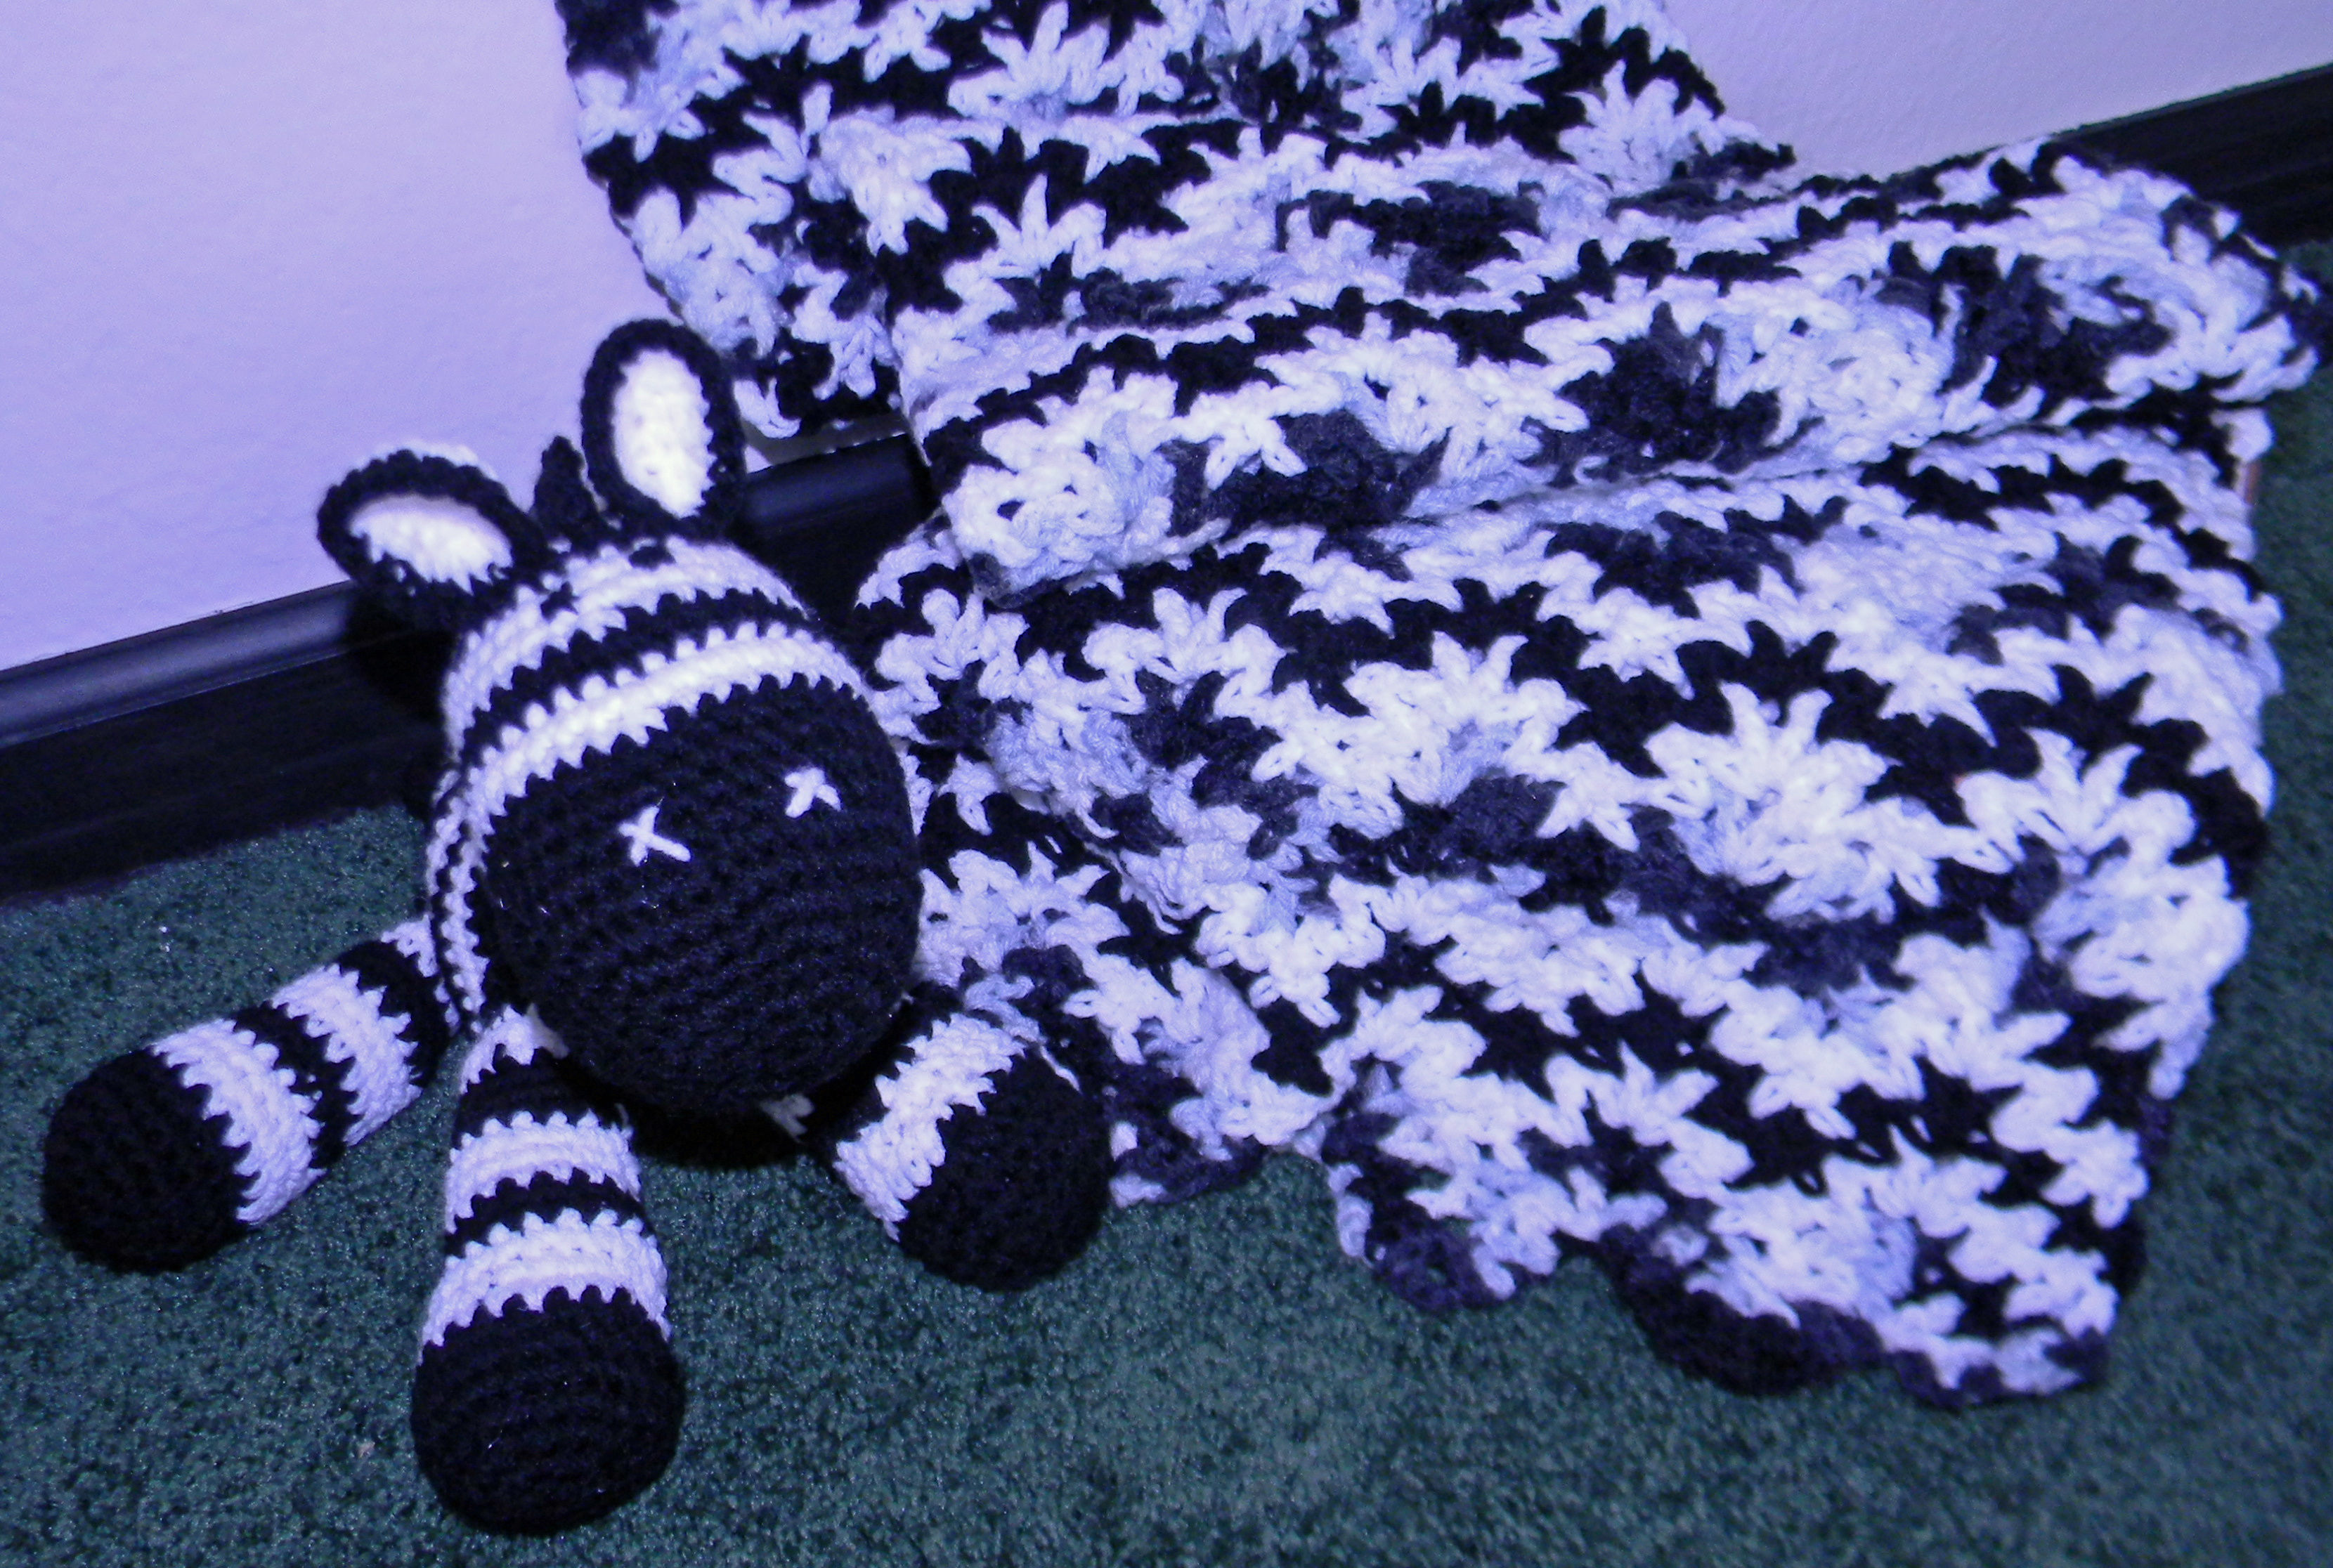 Zebra Crocheted Baby Blanket and Toy | lifewithkeo